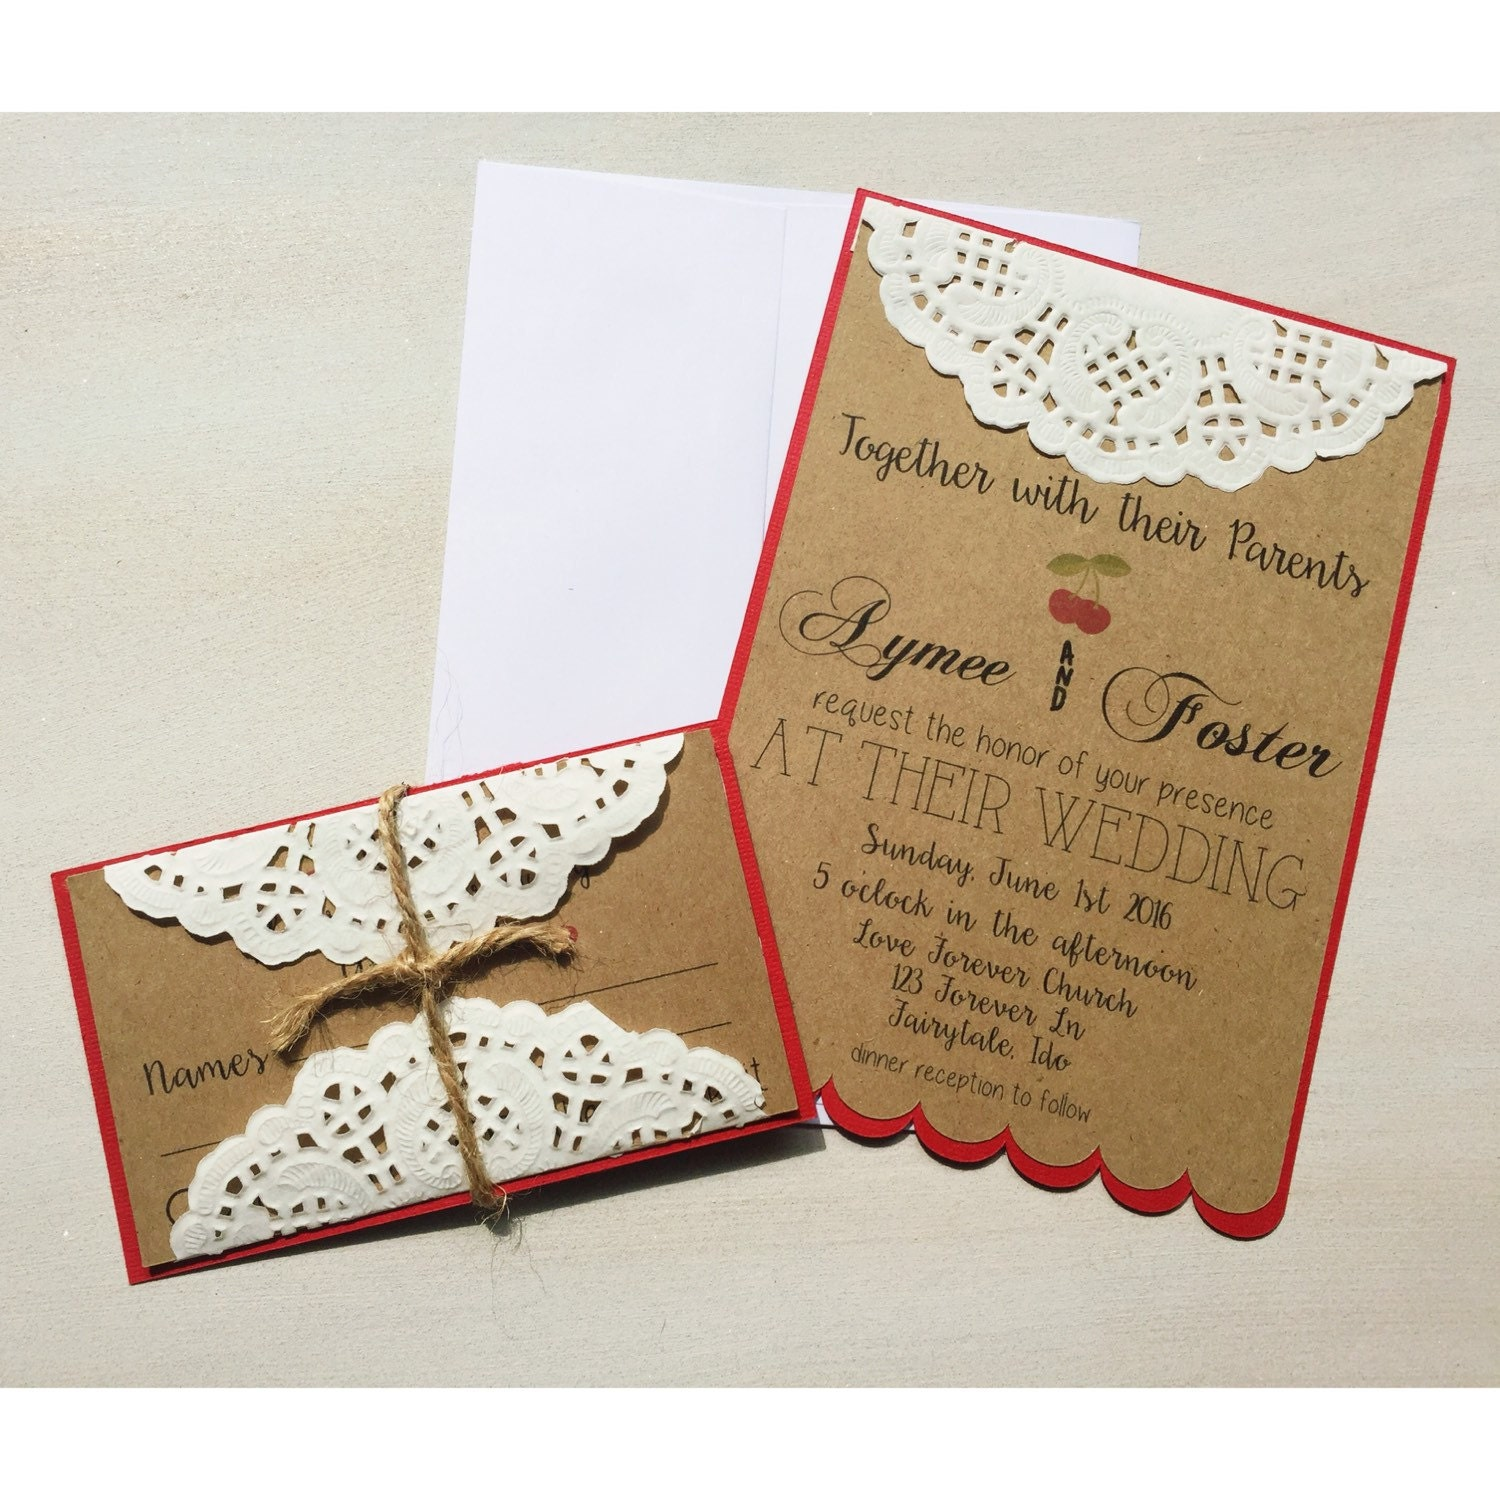 Doily Wrapped Wedding Invitations was best invitation sample